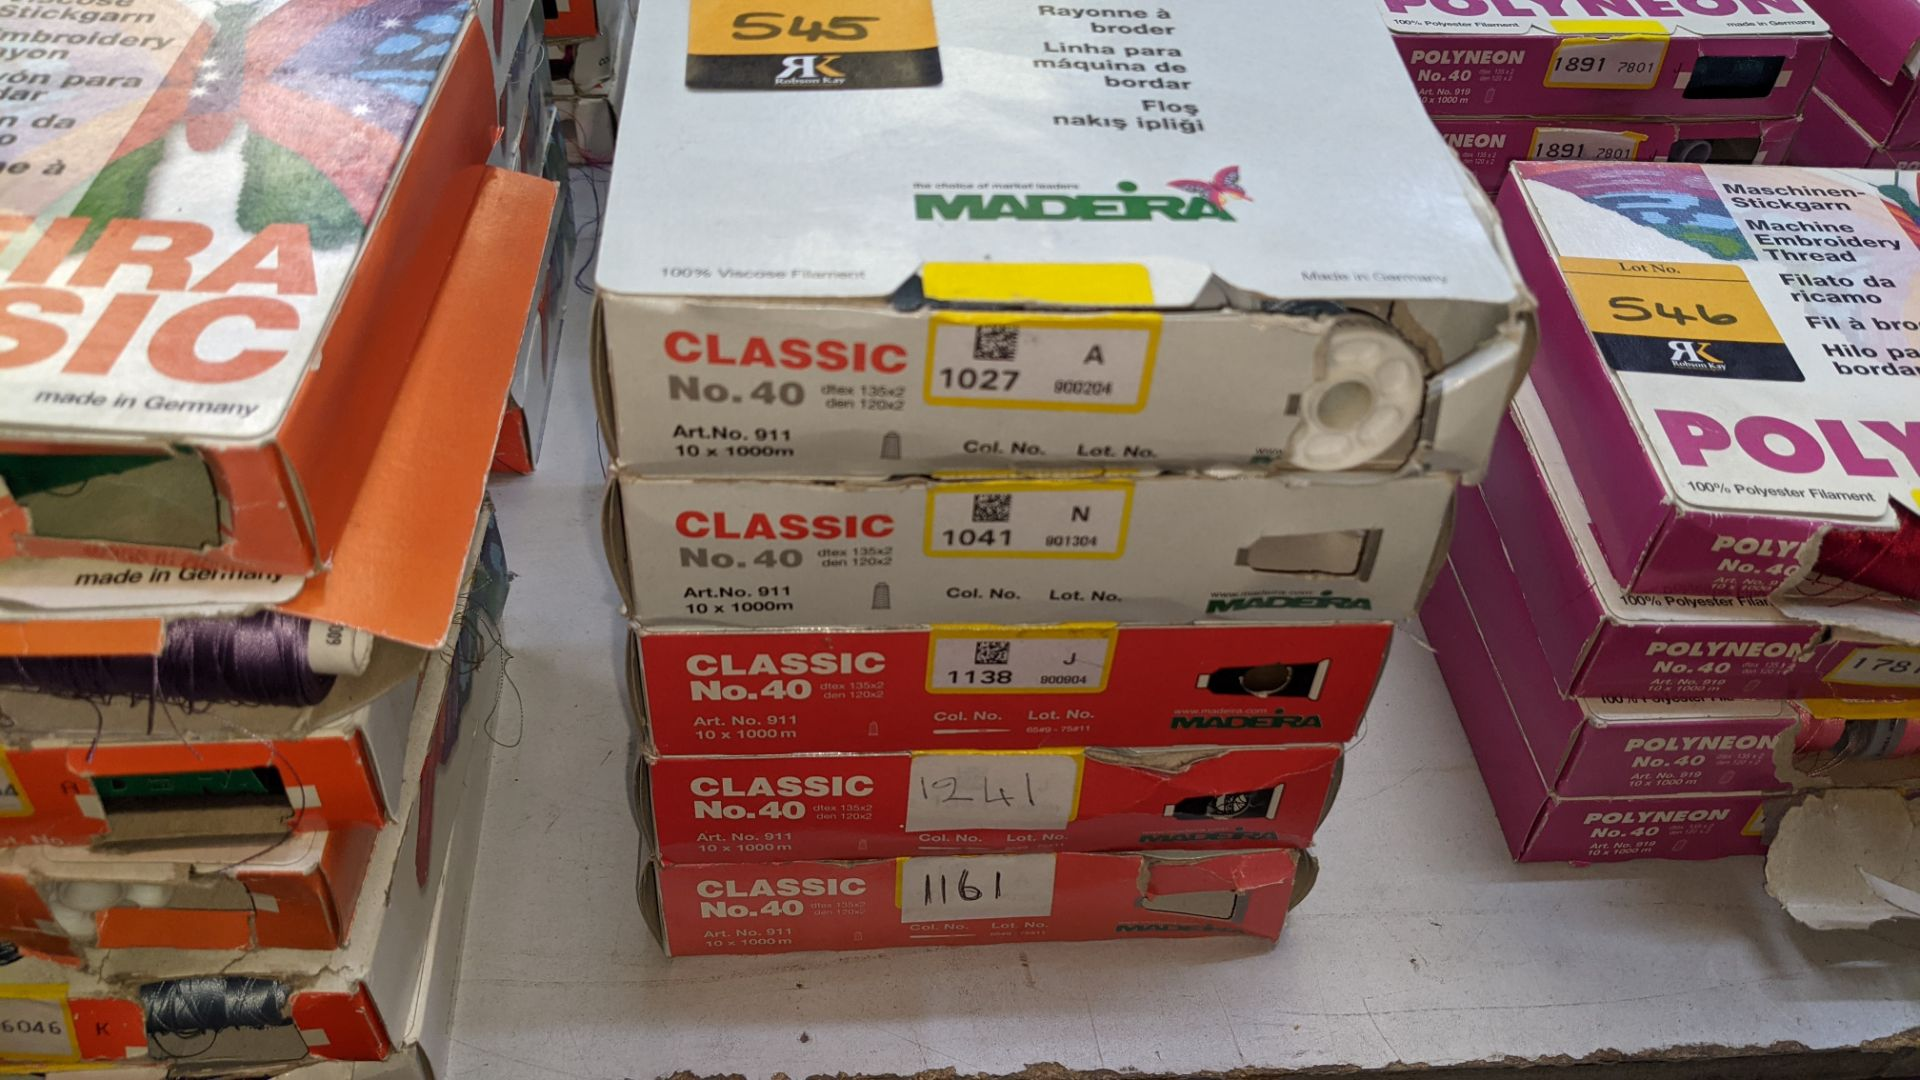 22 boxes of Madeira Classic No. 40 rayon embroidery thread - Image 4 of 11